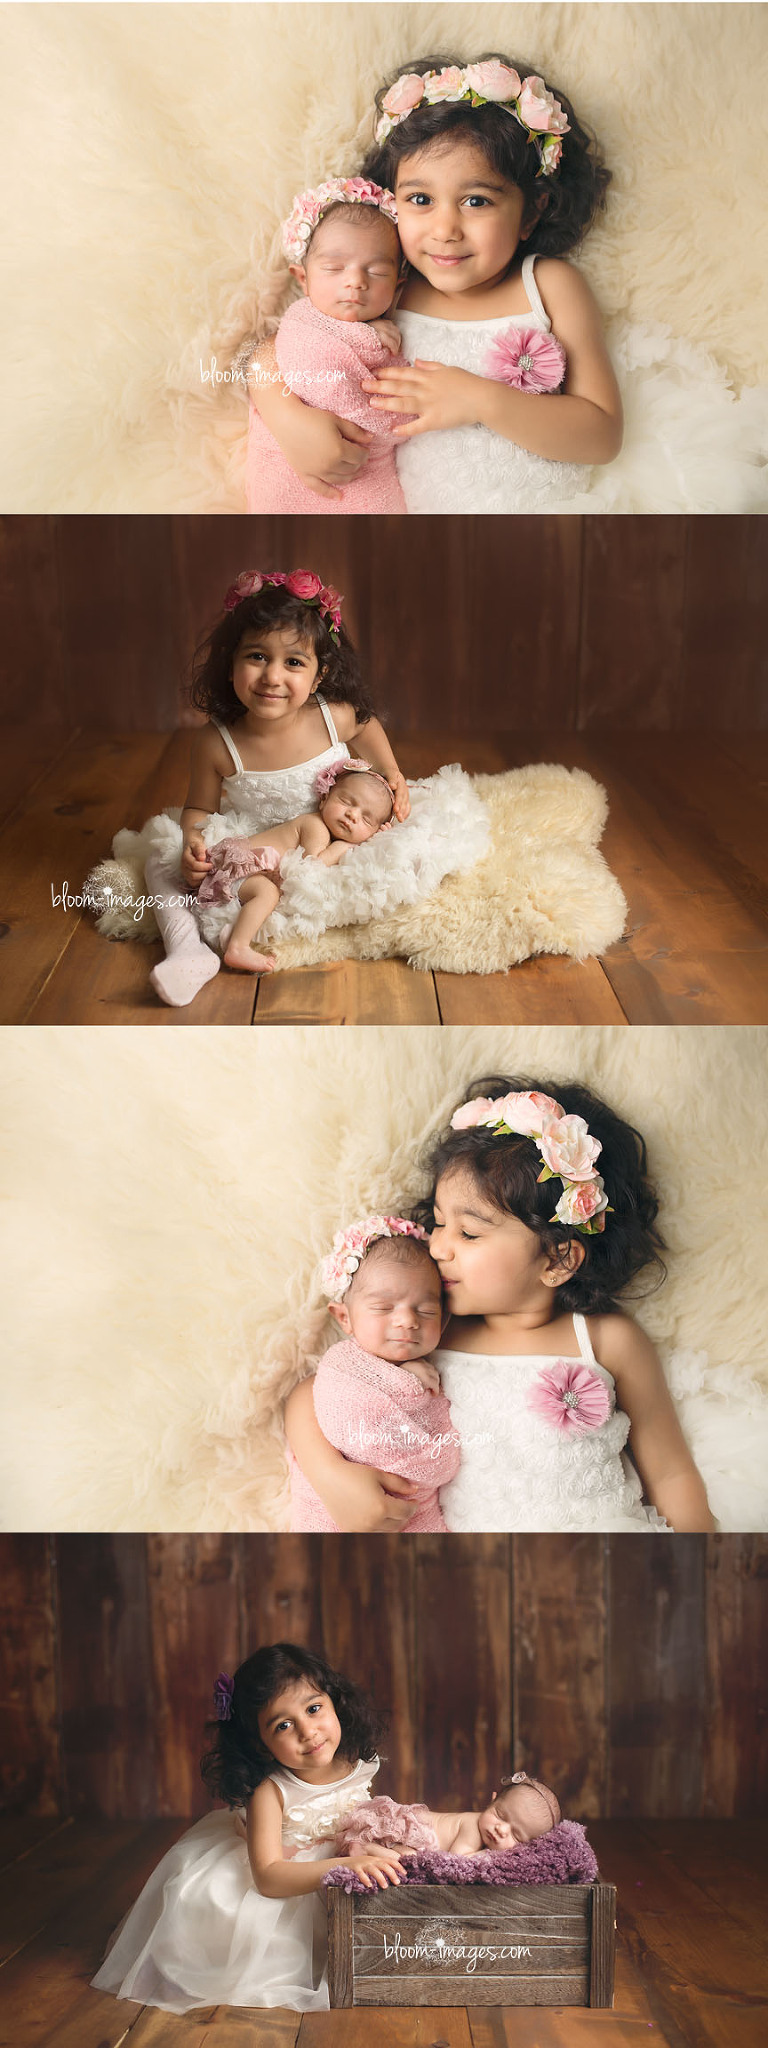 Newborn-Photography-Northern-Virginia-Baby-Girl-and-Big-Sister